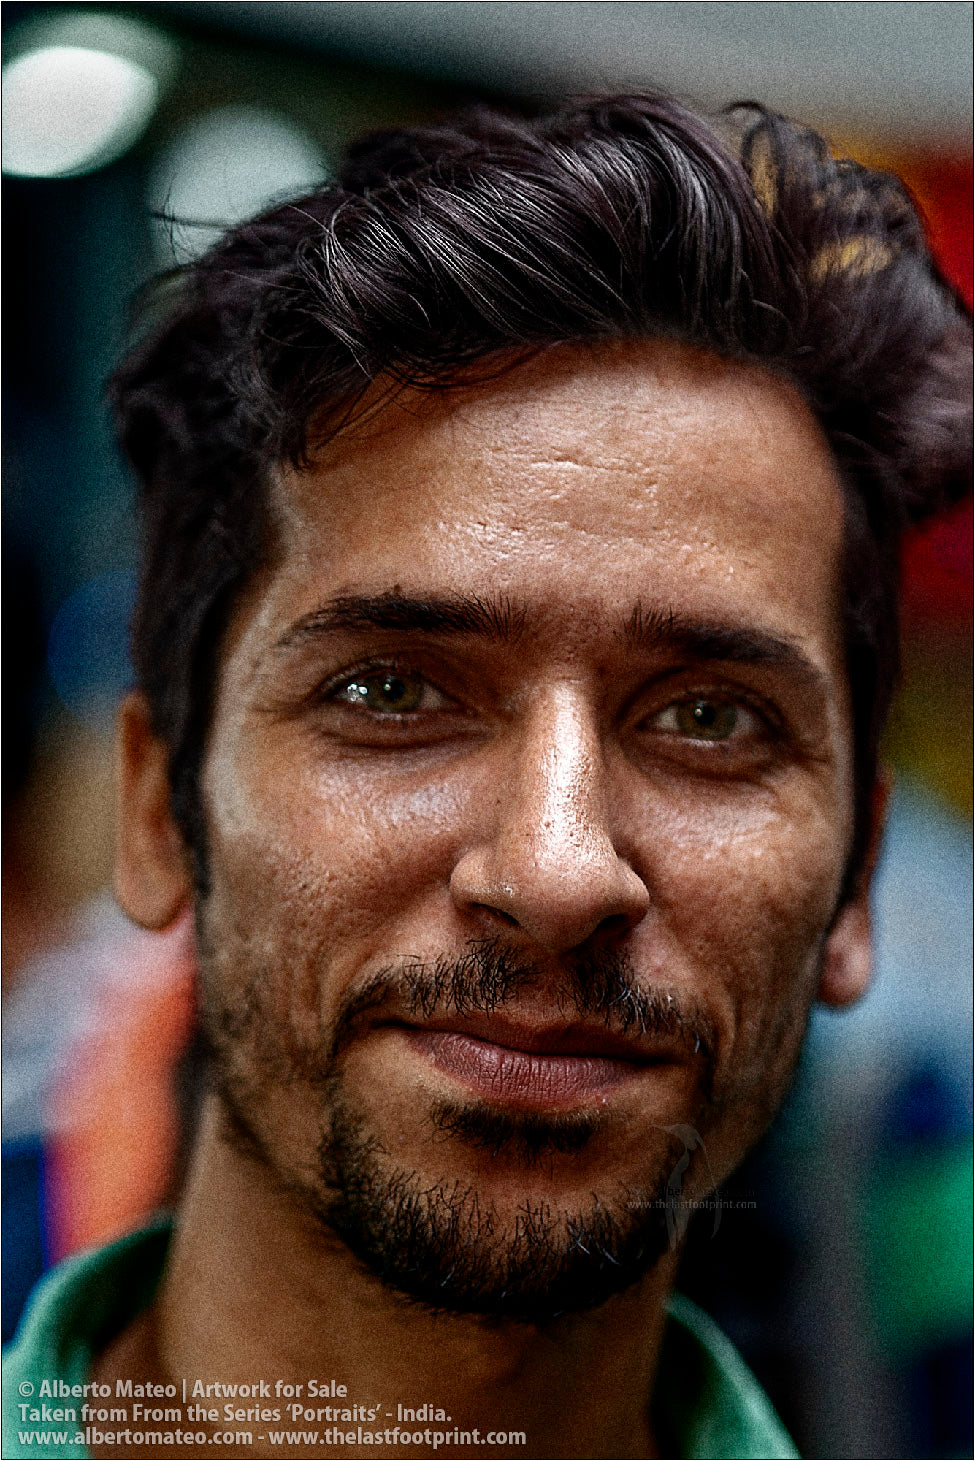 Portrait of Muslim seller Porter in Bara Bazar streets, Kolkata, India. [COLOR]